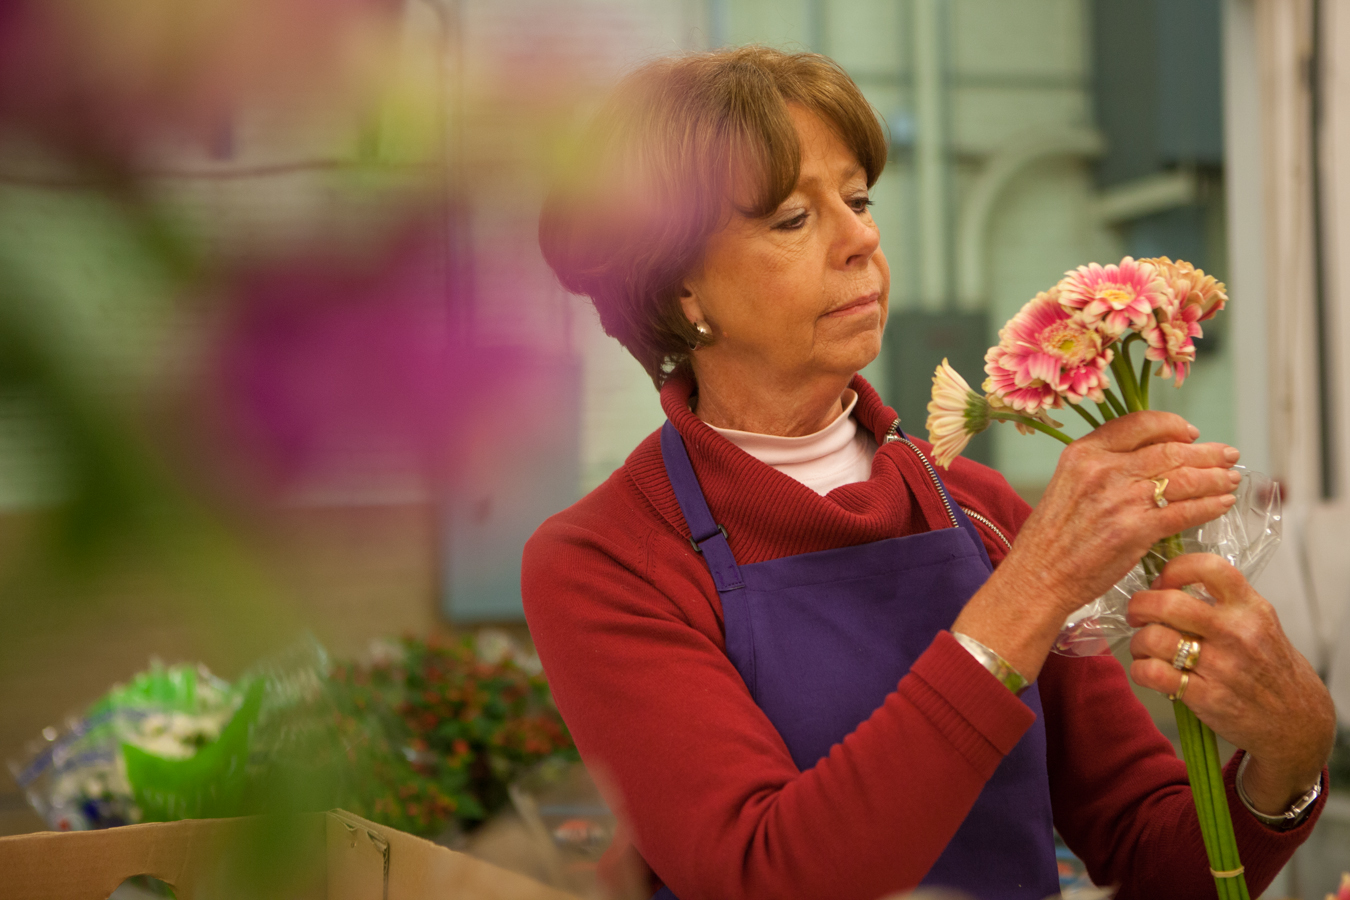 Making sure all the flowers are intact and perfect for arrangements.